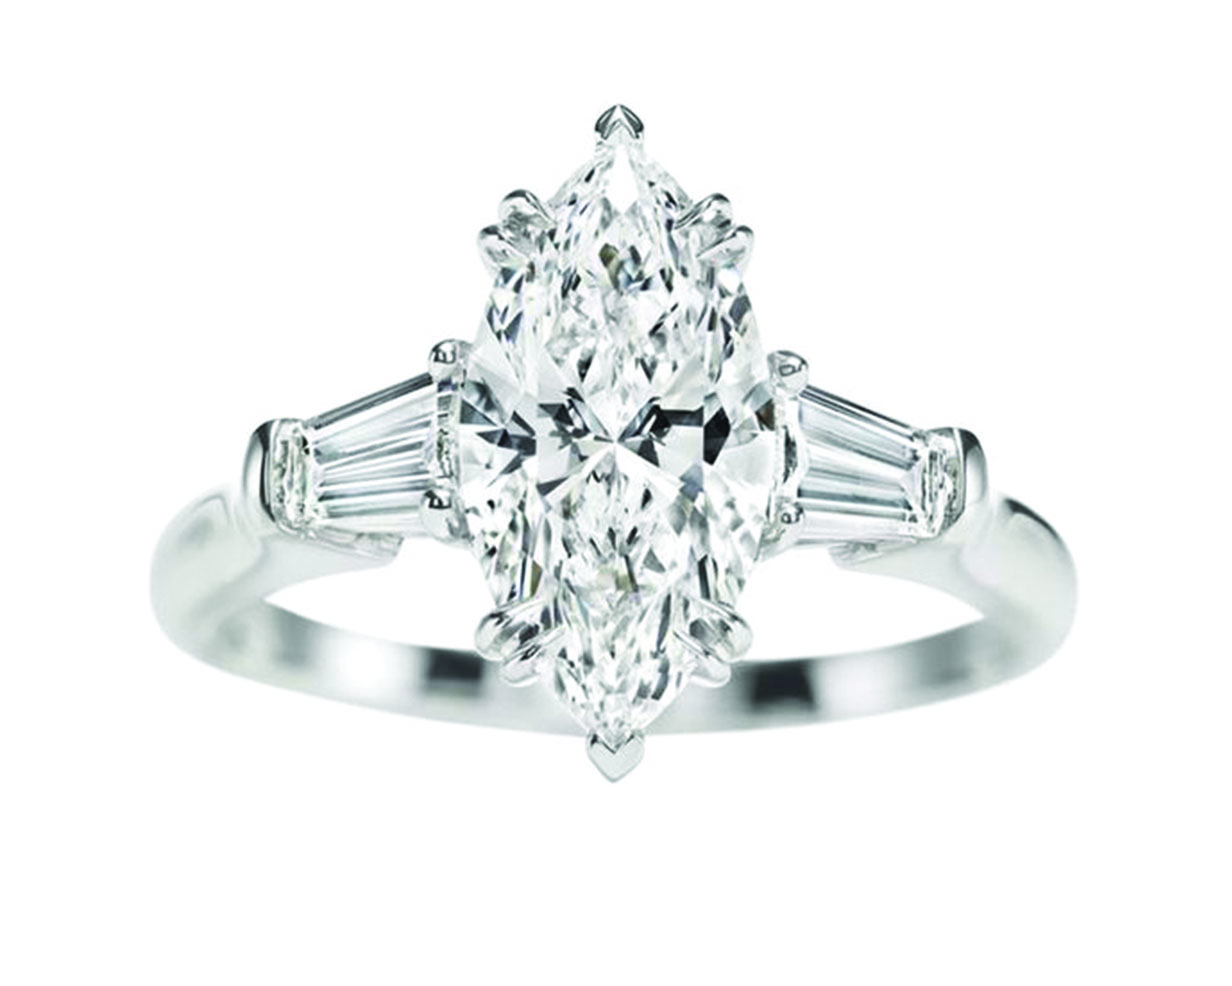 Marquise cut diamond ring with two side stones on a platinum band